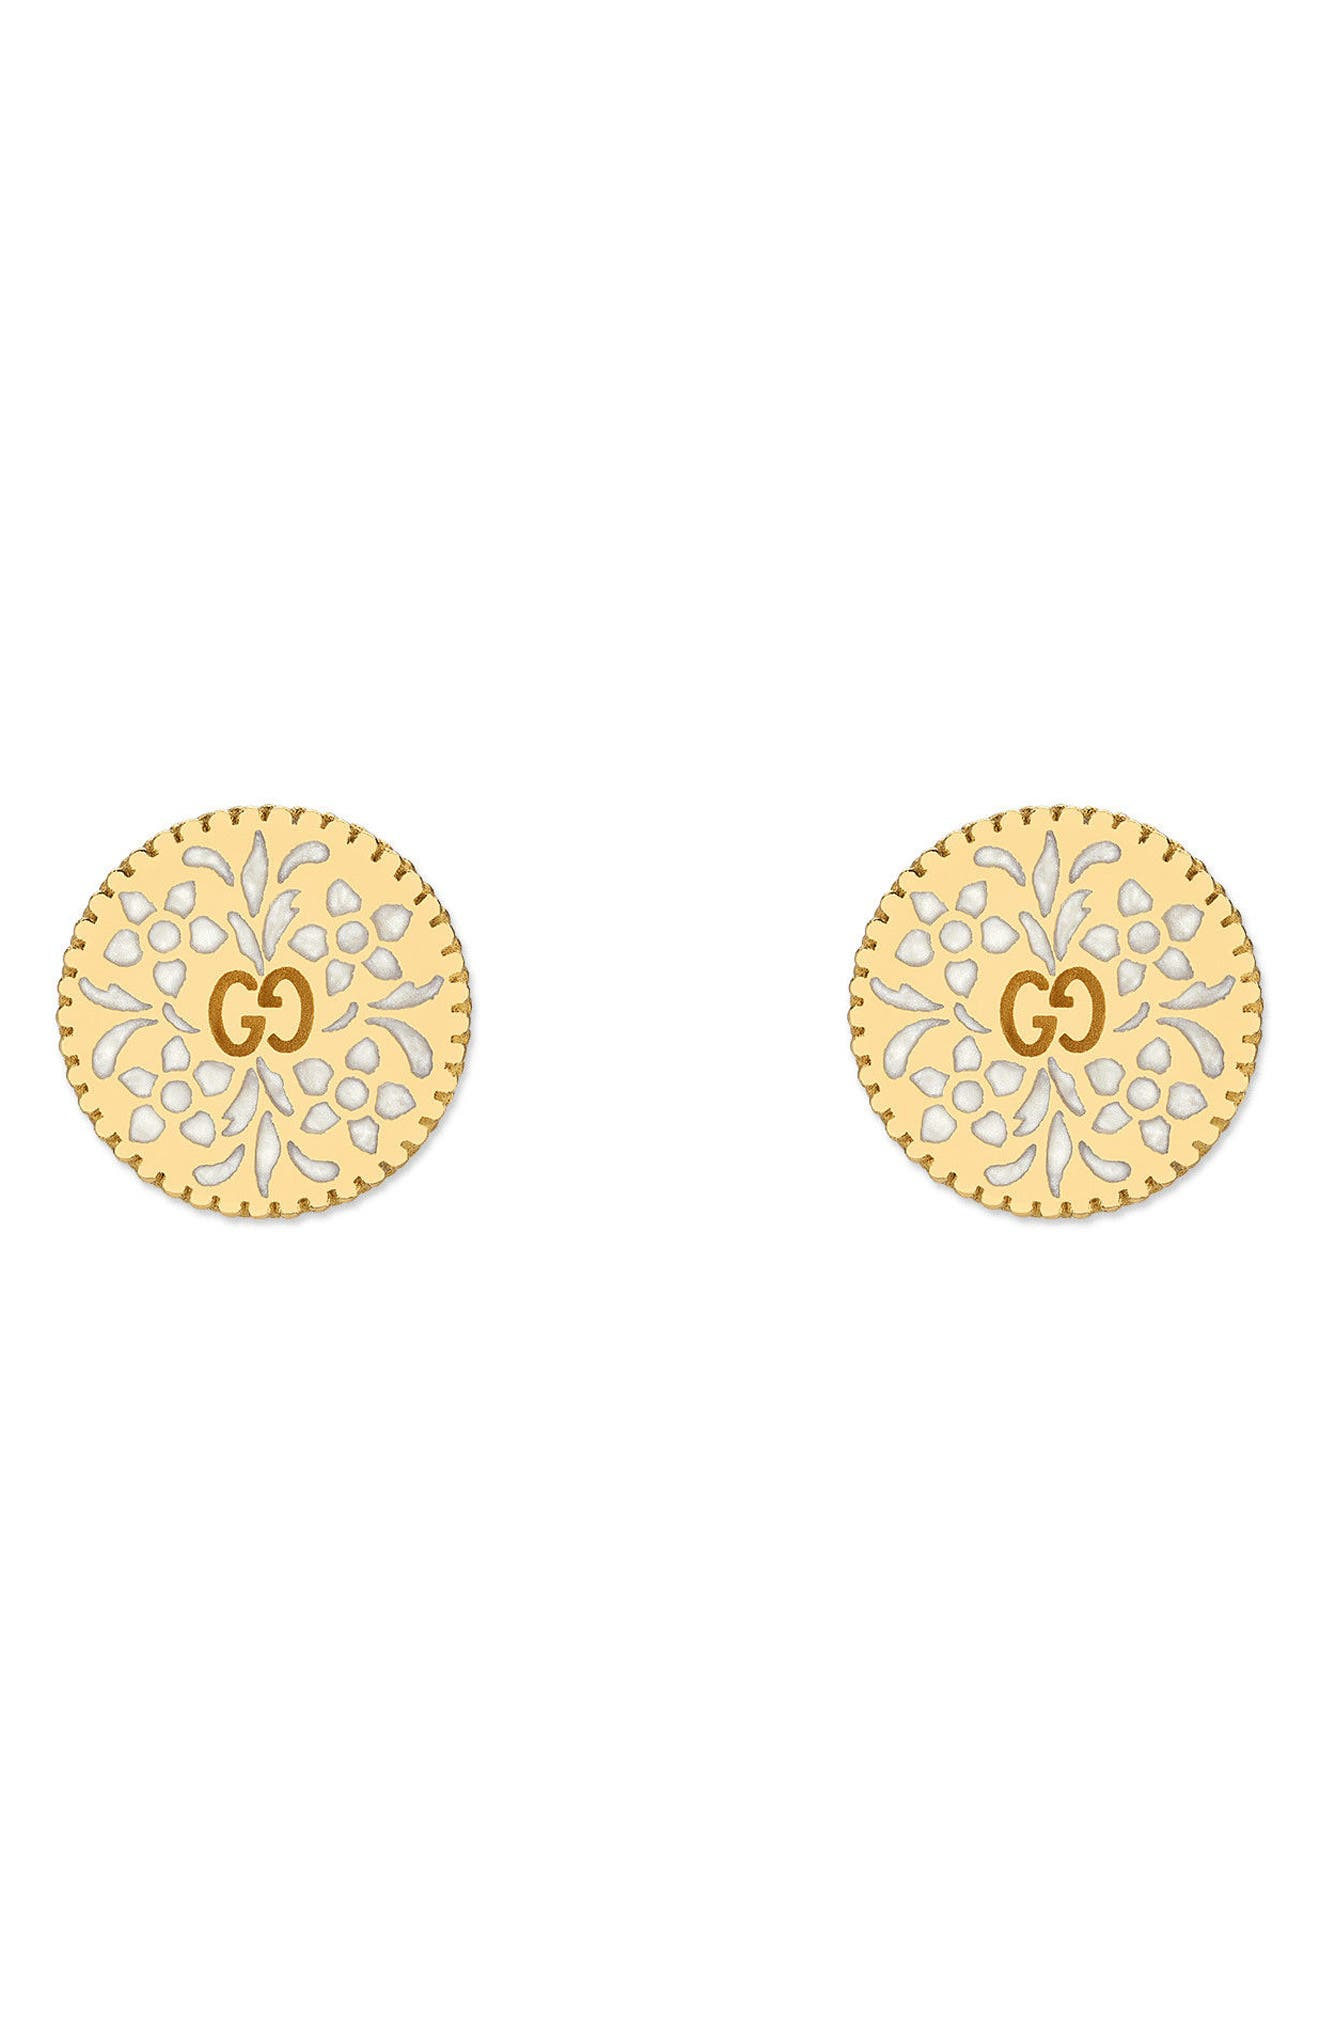 Icon Blooms Stud Earrings,                             Main thumbnail 1, color,                             Yellow Gold